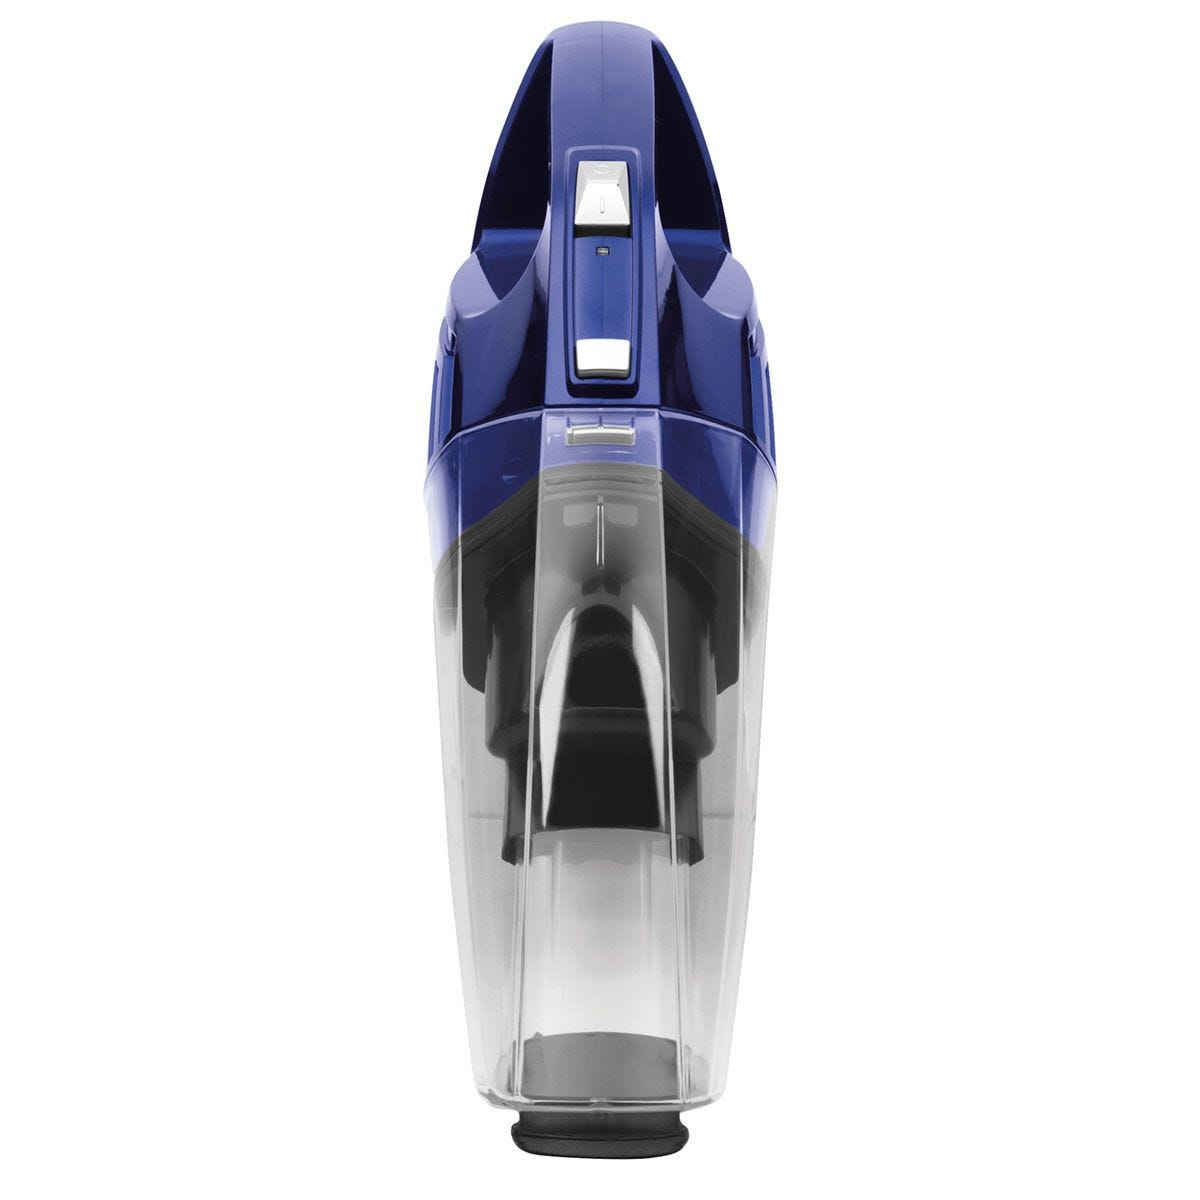 Beldray Cordless Wet & Dry Handheld Vacuum Cleaner - Blue